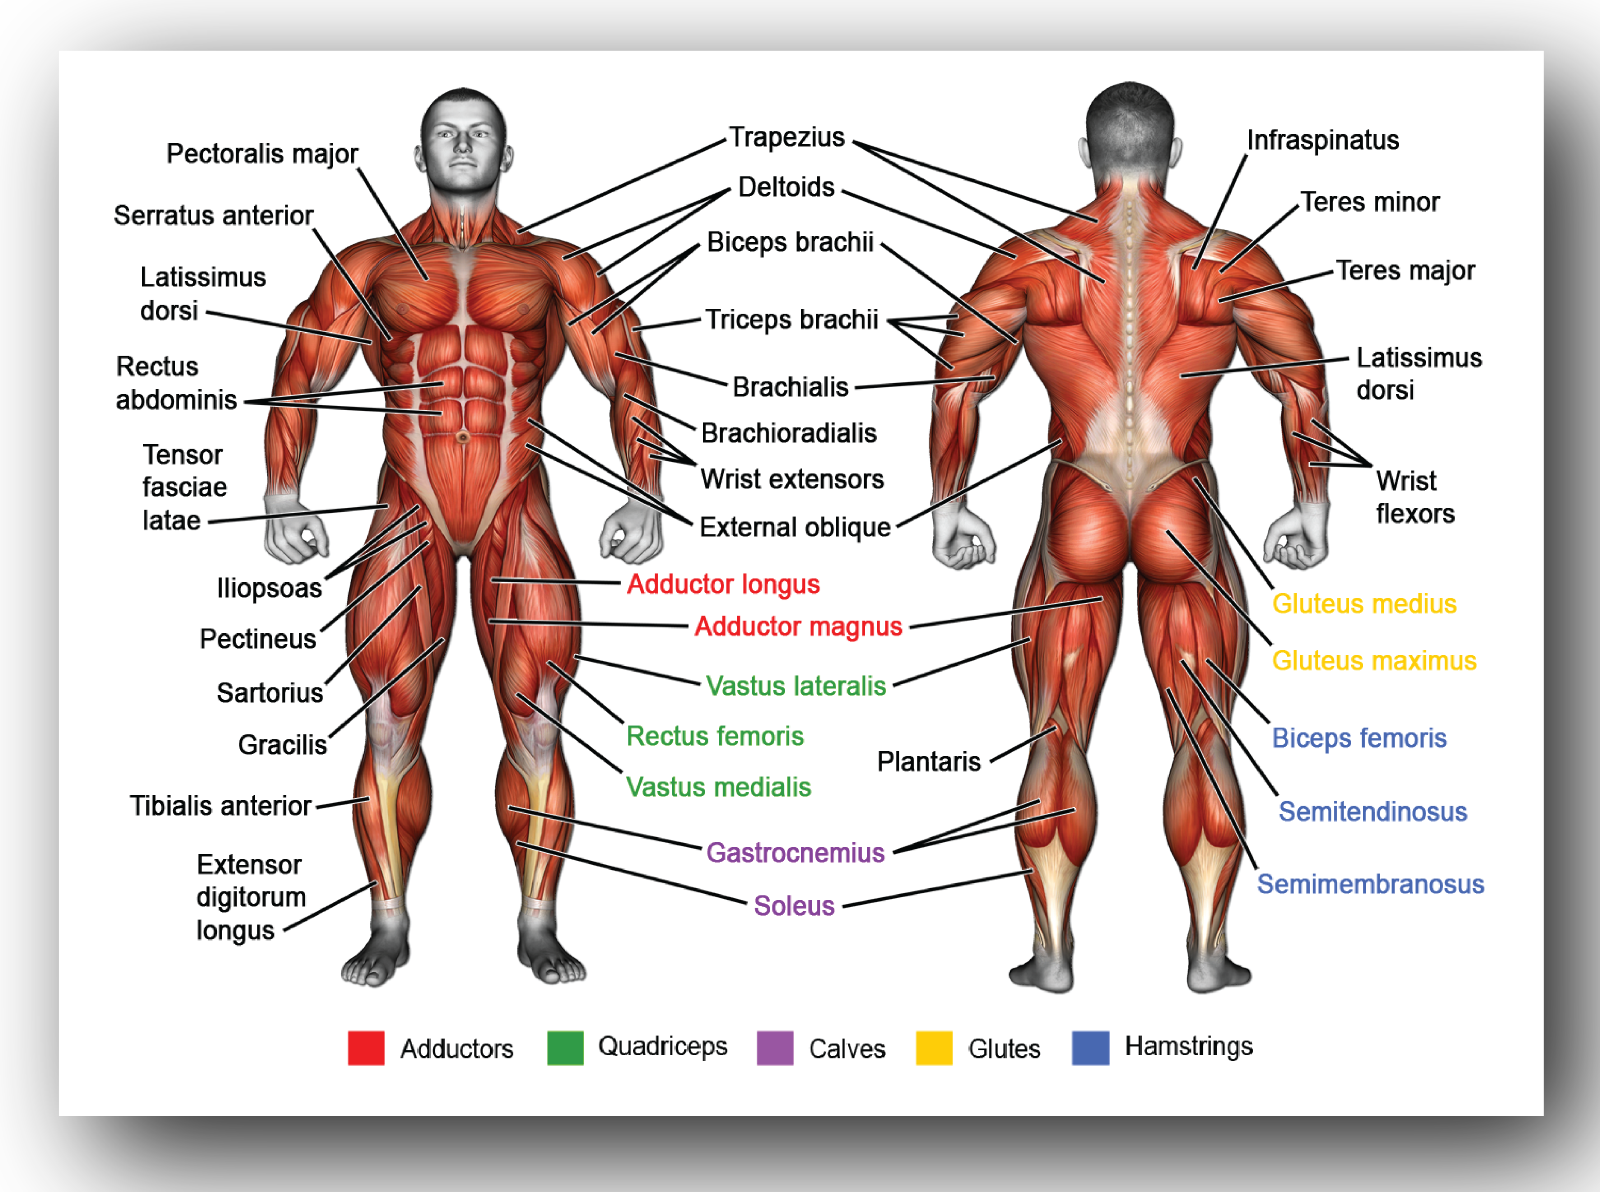 The Human Musculature Science Educational Diagram Poster *LAMINATE* A5 A4 A3